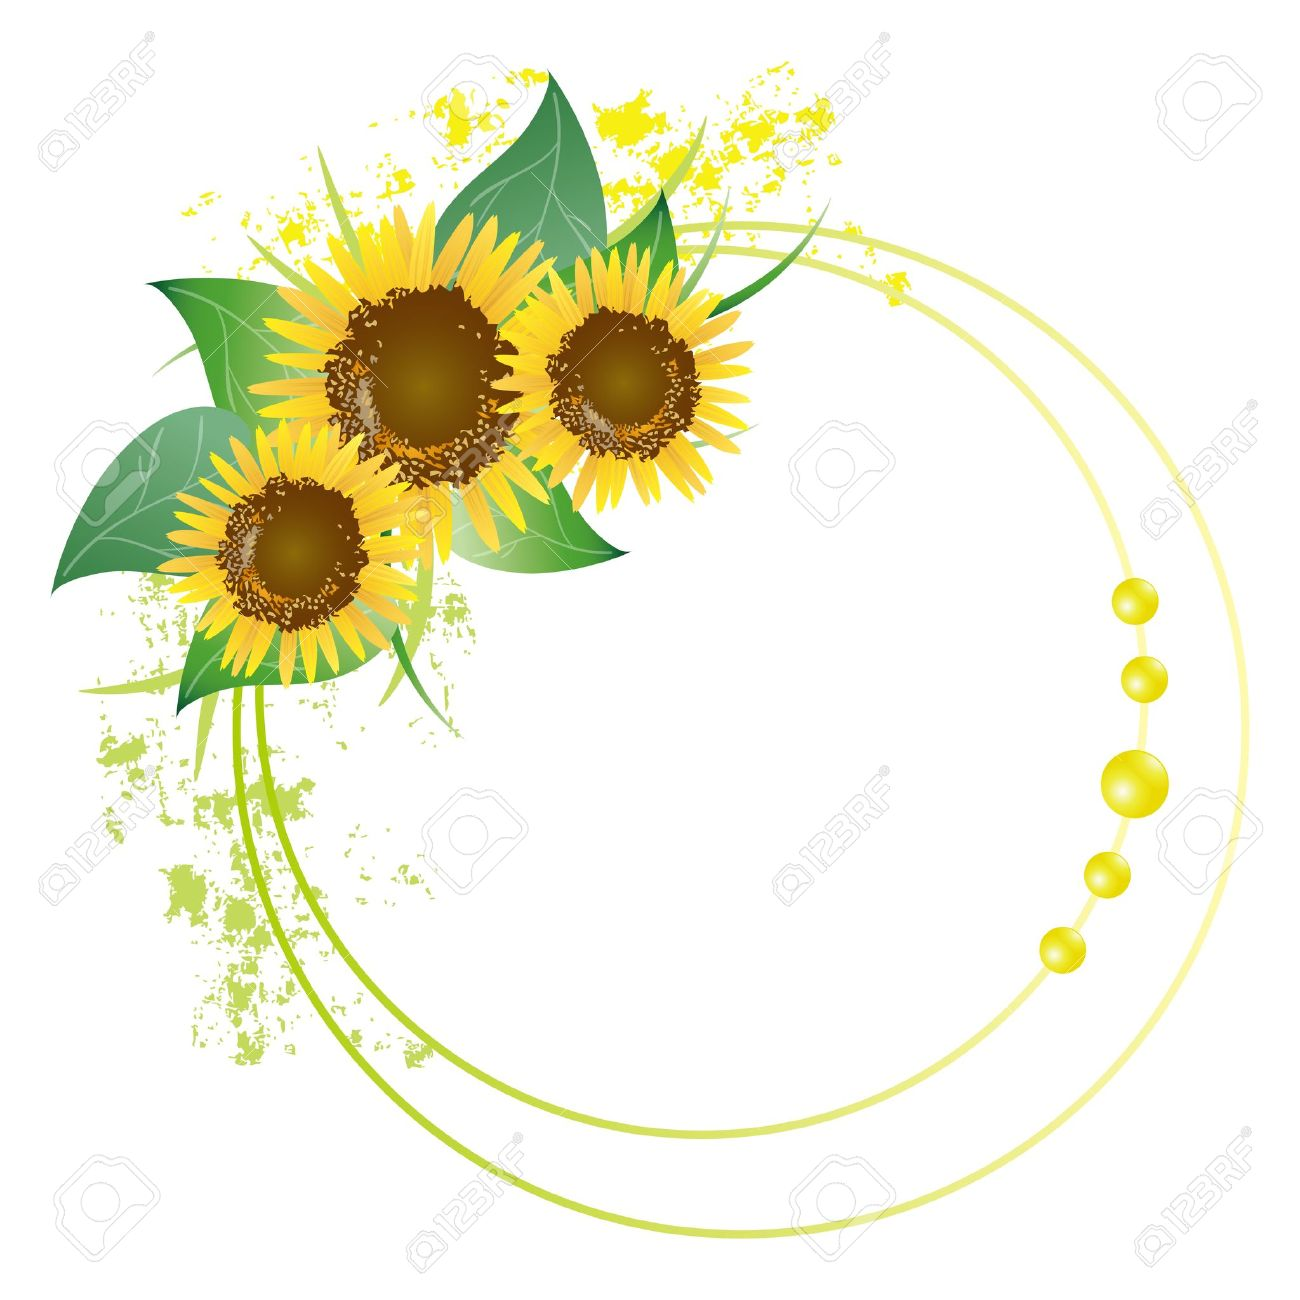 Sunflower Frame Royalty Free Cliparts, Vectors, And Stock ...